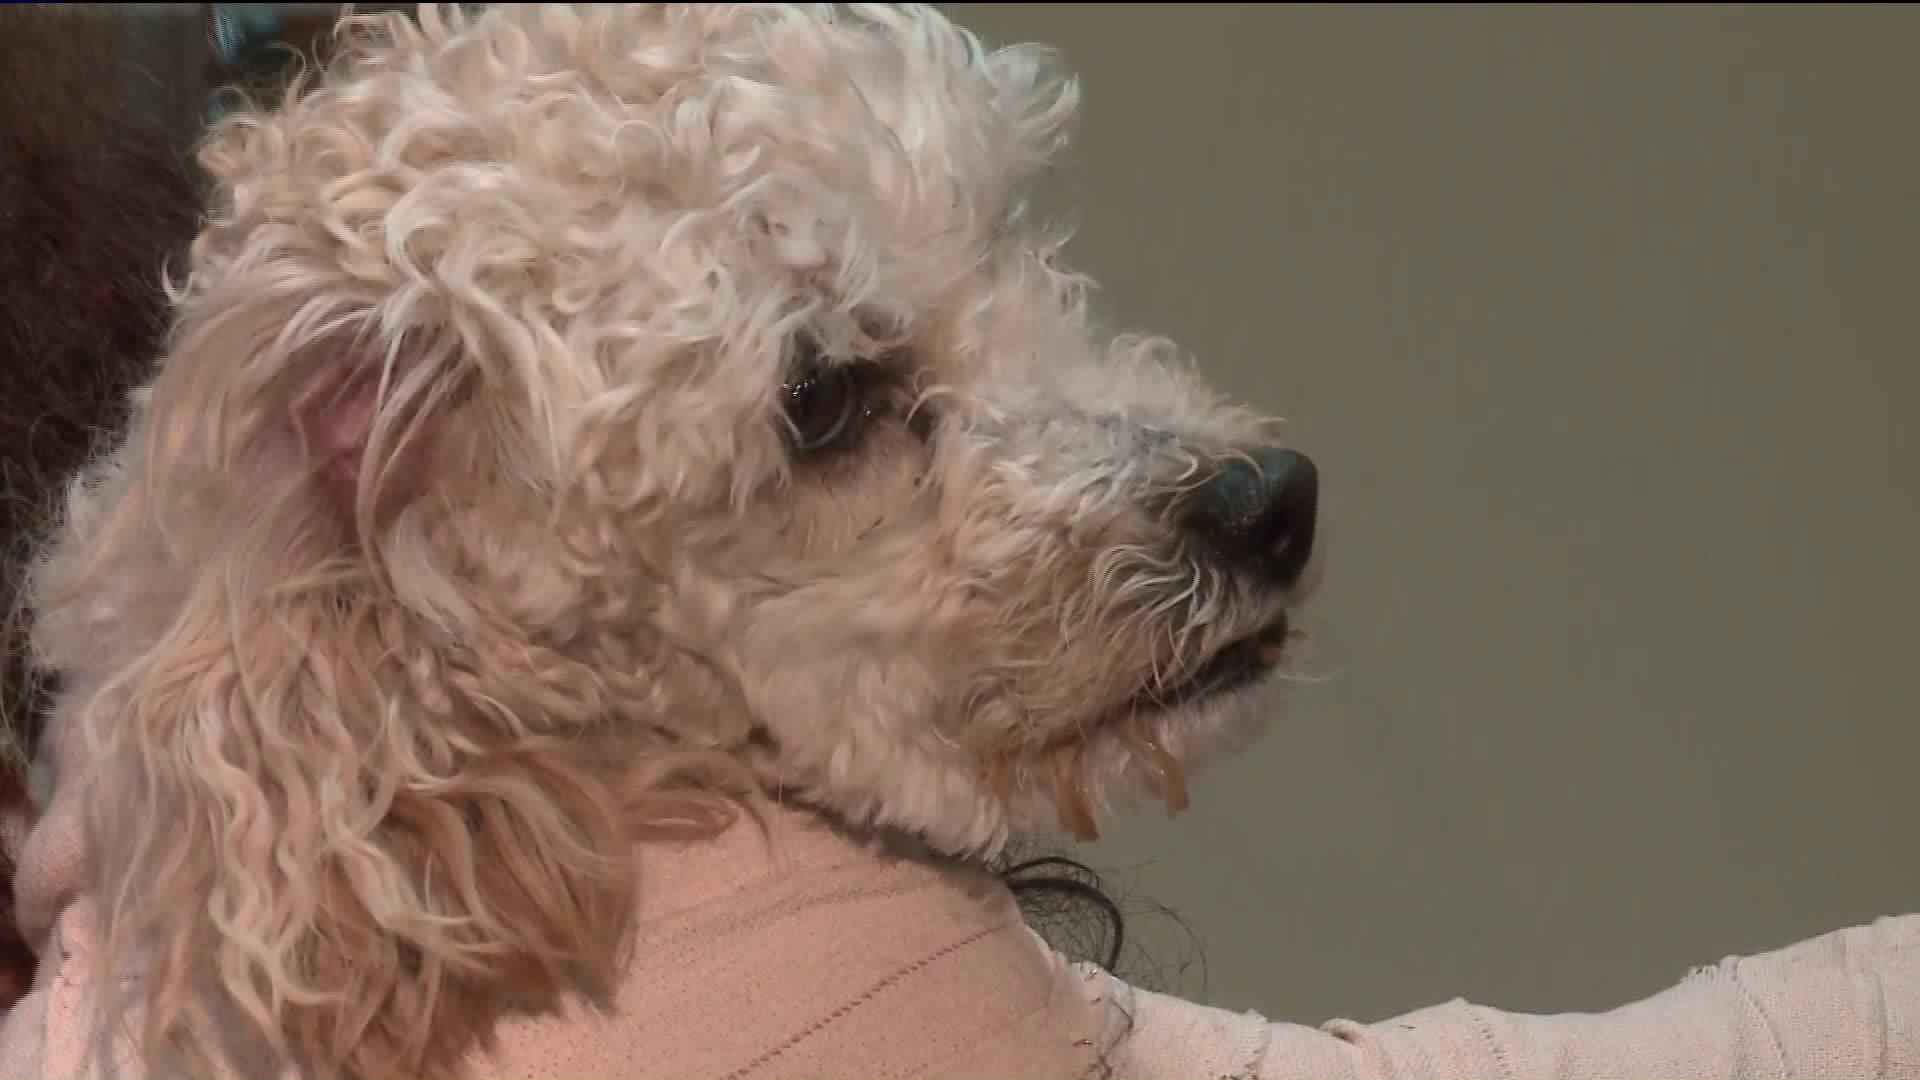 Man Charged With Animal Cruelty for Dropping Toy Poodles from Parking Tower